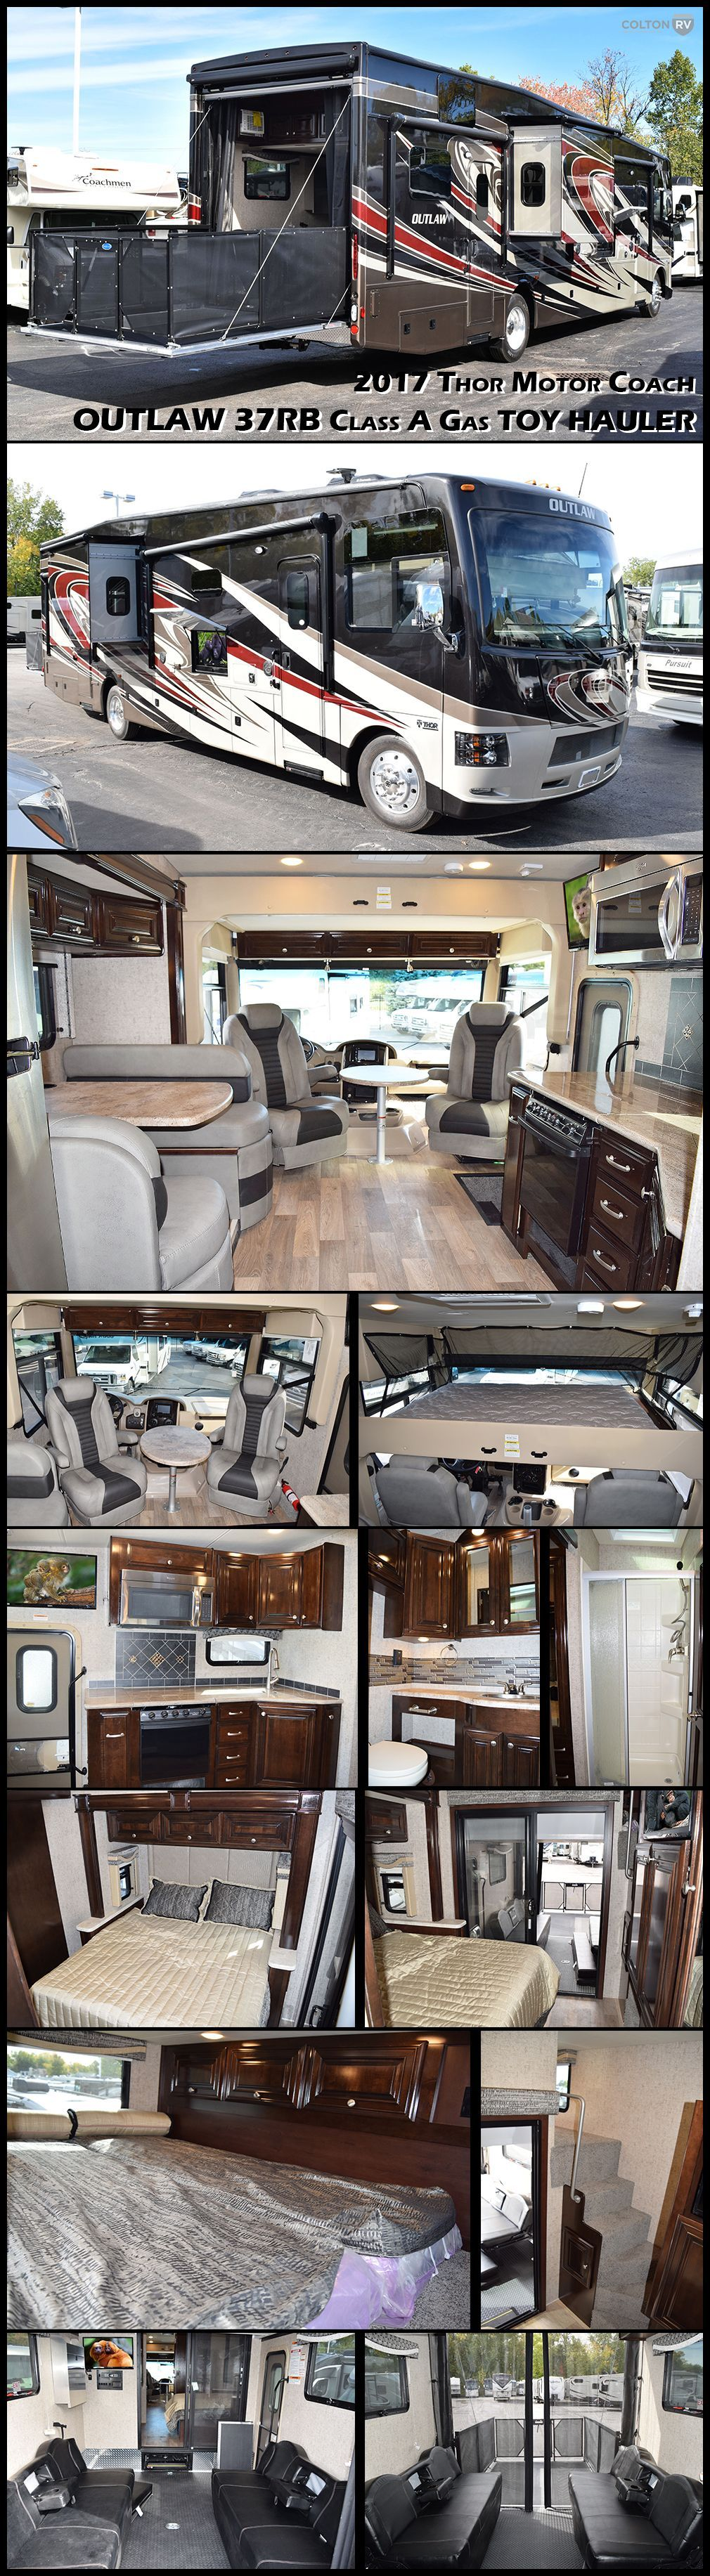 30 Amazing Luxury Rv Gallery That Never You Seen Before